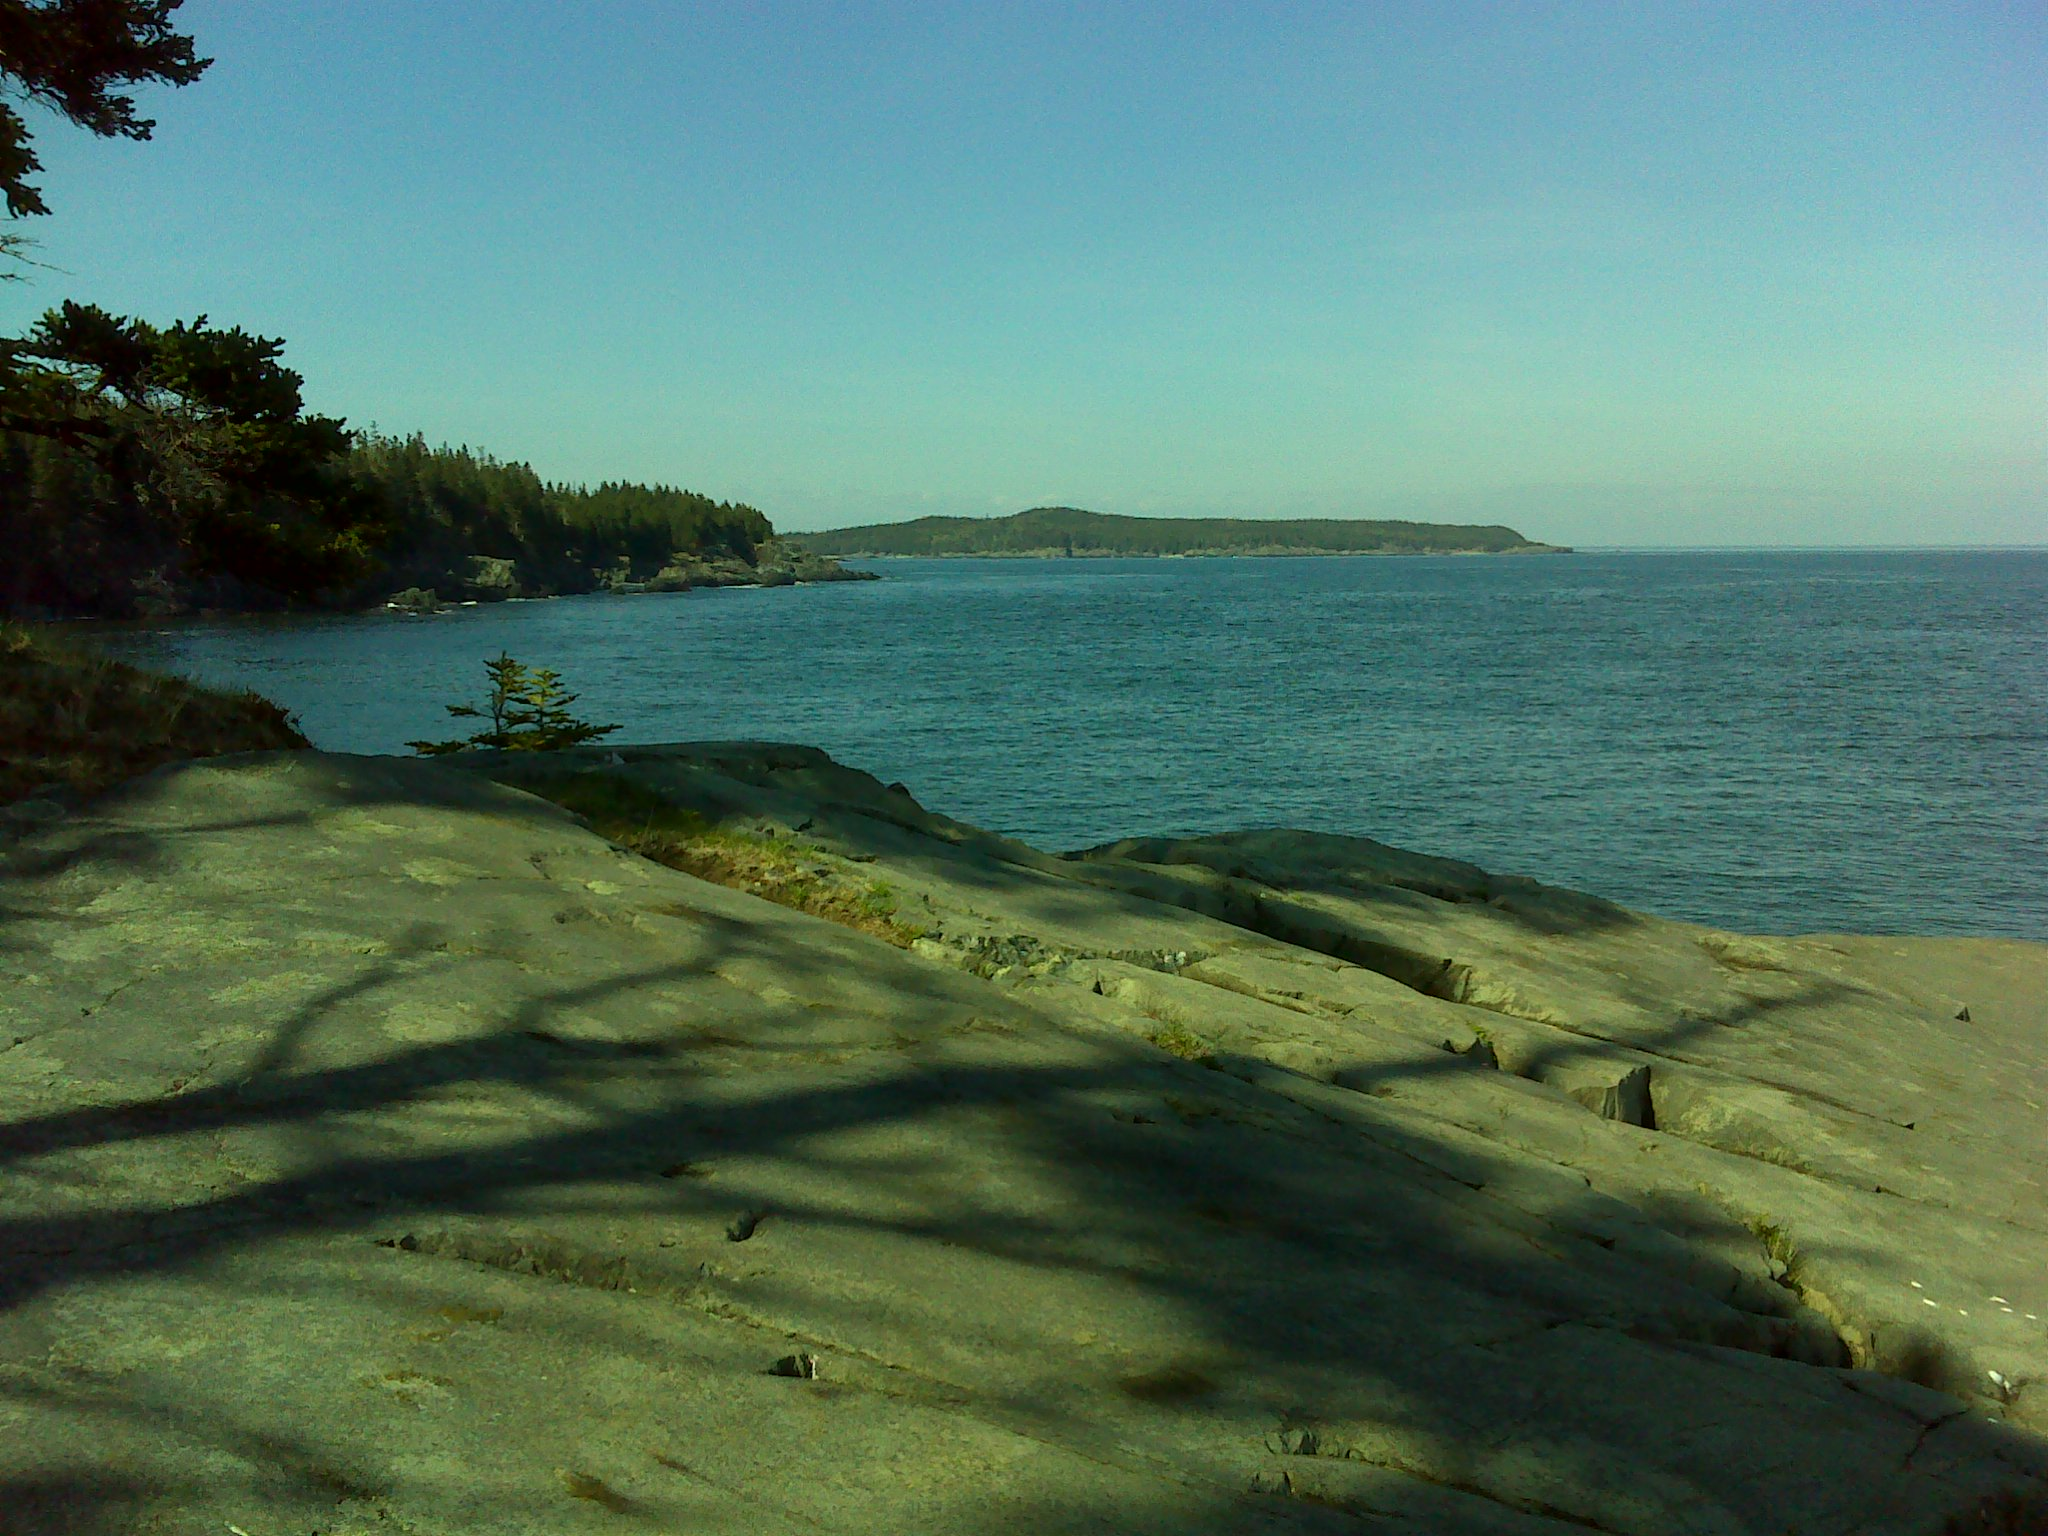 The view of Quoddy Head from the end of the Hamilton Cove Trail